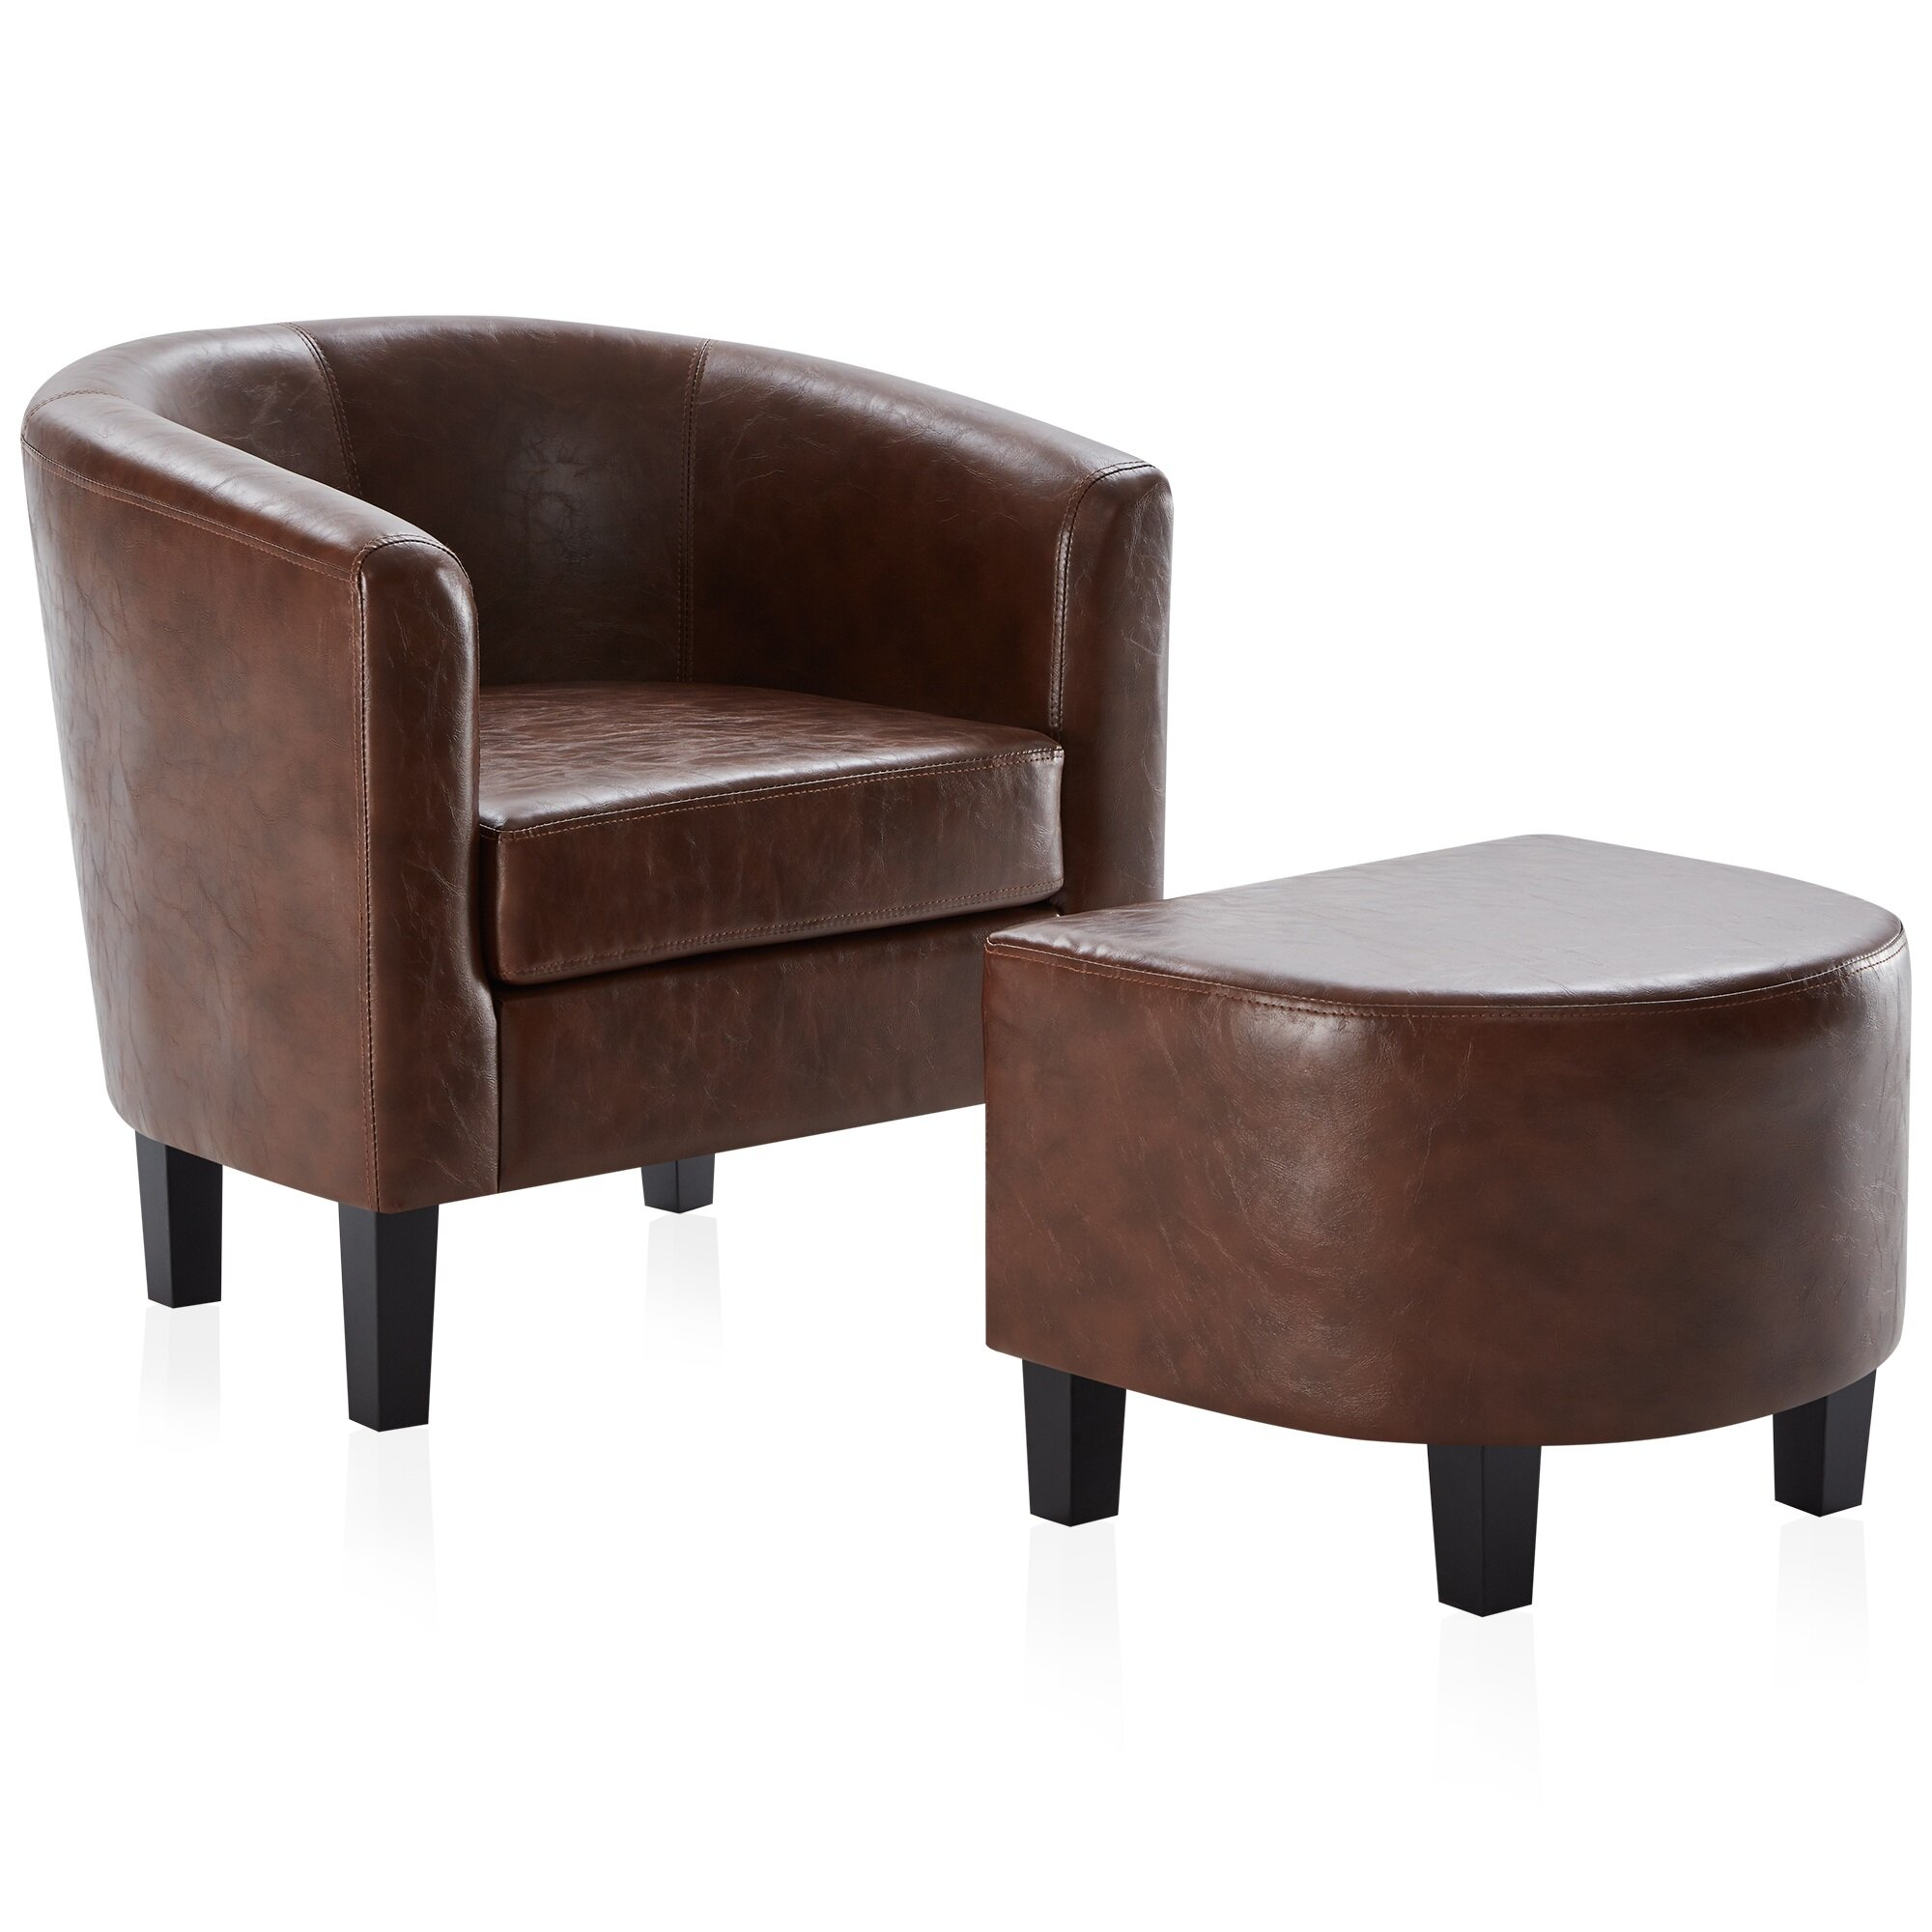 Ottoman Included Small Accent Chairs You'Ll Love In 2021 Within Annegret Faux Leather Barrel Chair And Ottoman Sets (View 4 of 15)